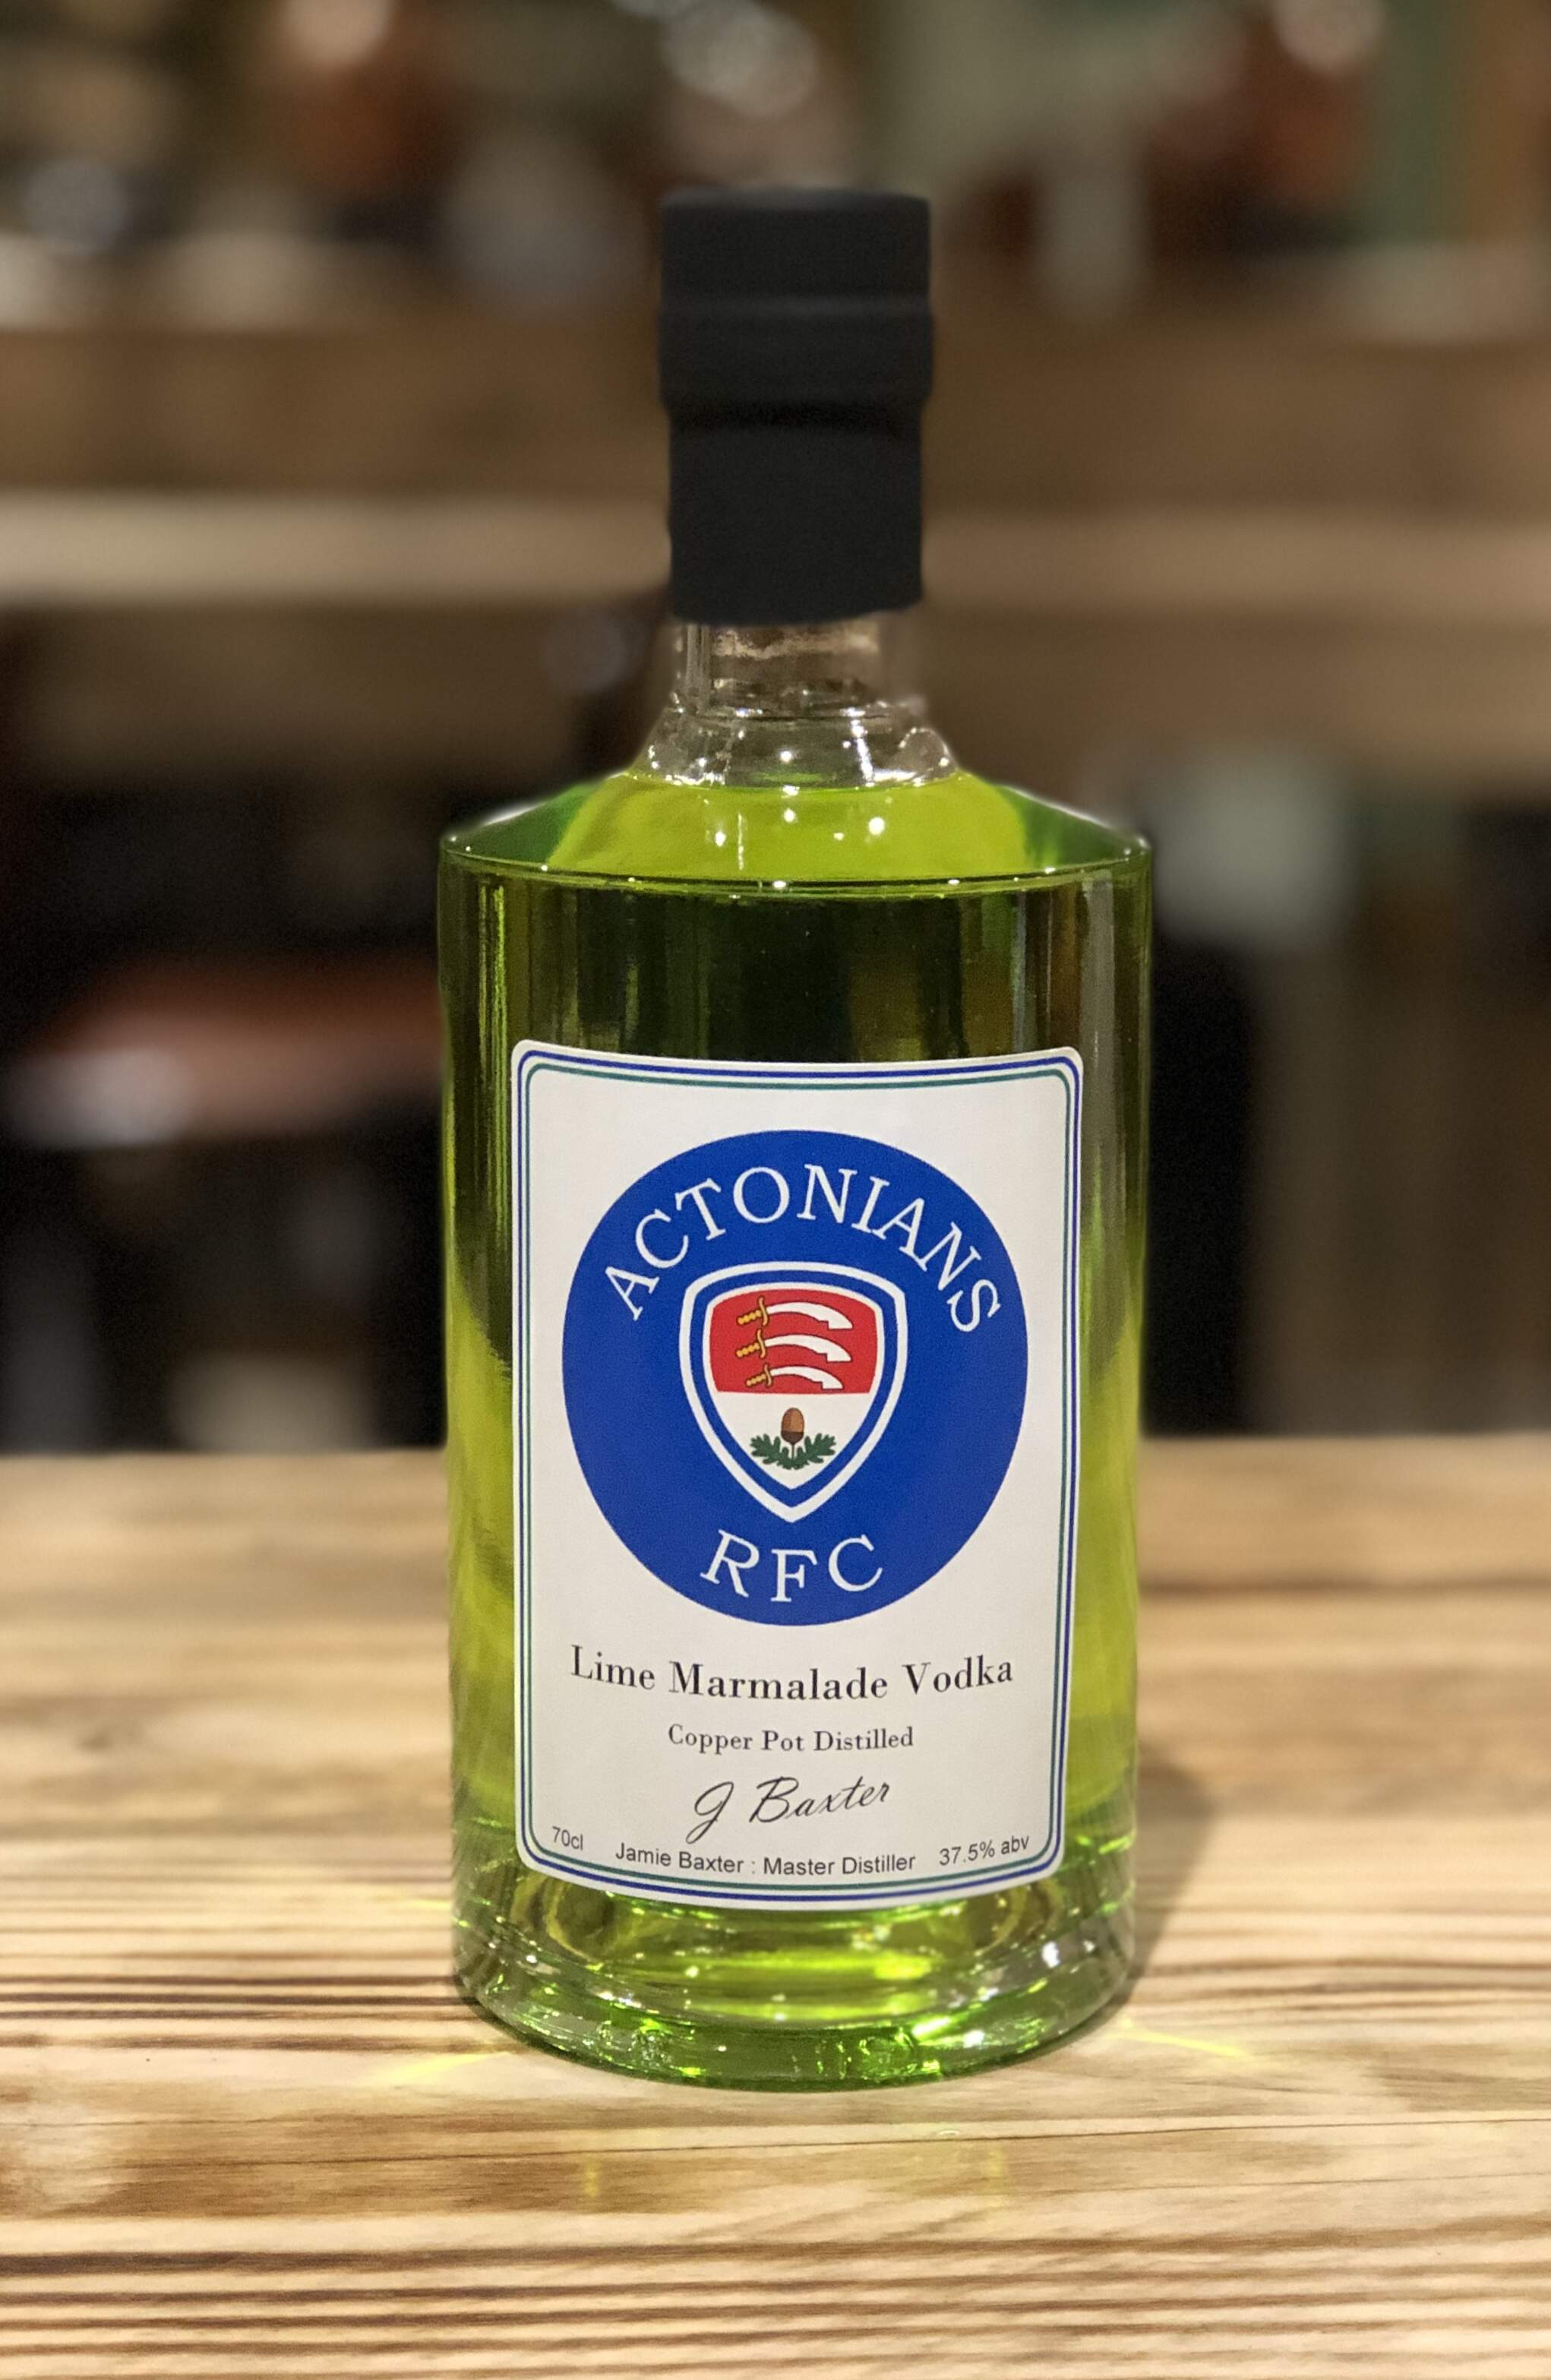 Actonians RFC 'Lime Marmalade Vodka'